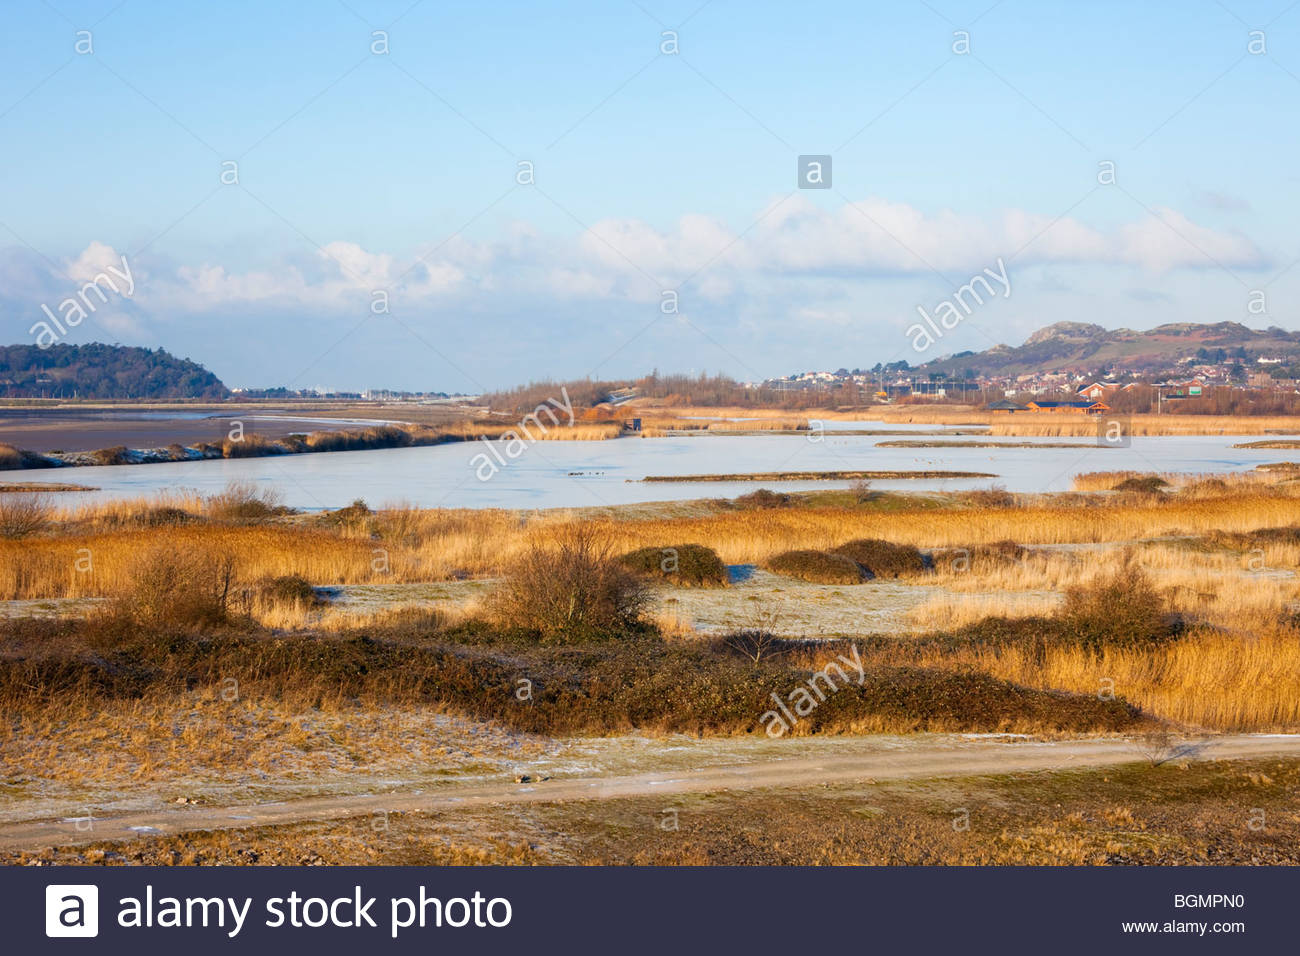 Conwy Nature Reserve Llandudno Junction, View across Conwy RSPB nature reserve coastal lagoons and ...